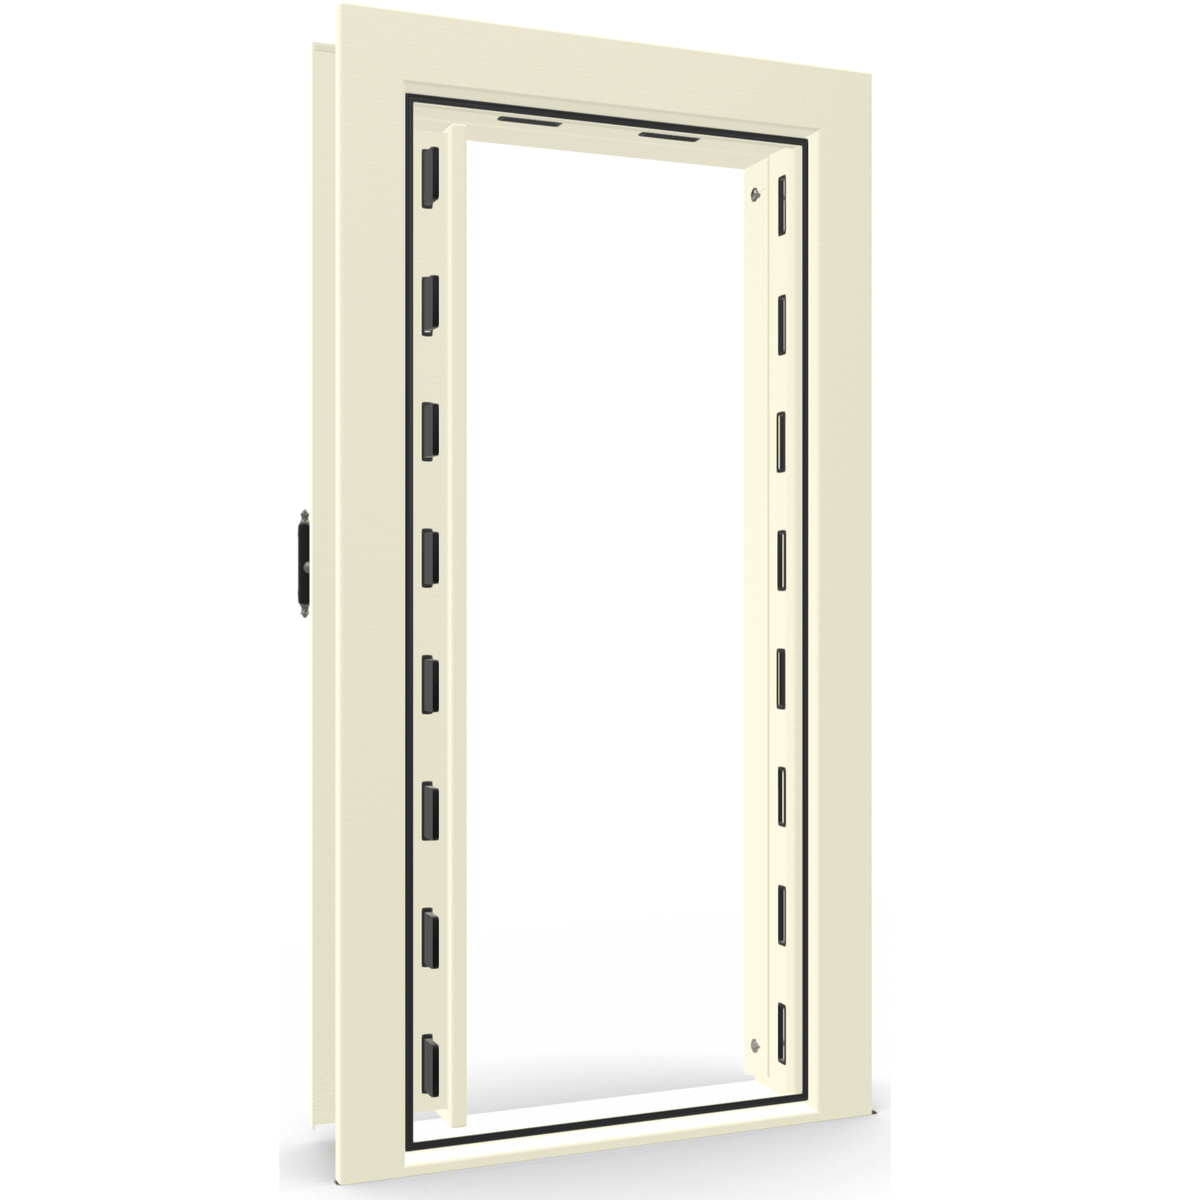 "Vault Door Left Inswing | White | Black Mechanical Lock | 81-85""(H) x 27-42""(W) x 7-10""(D)"